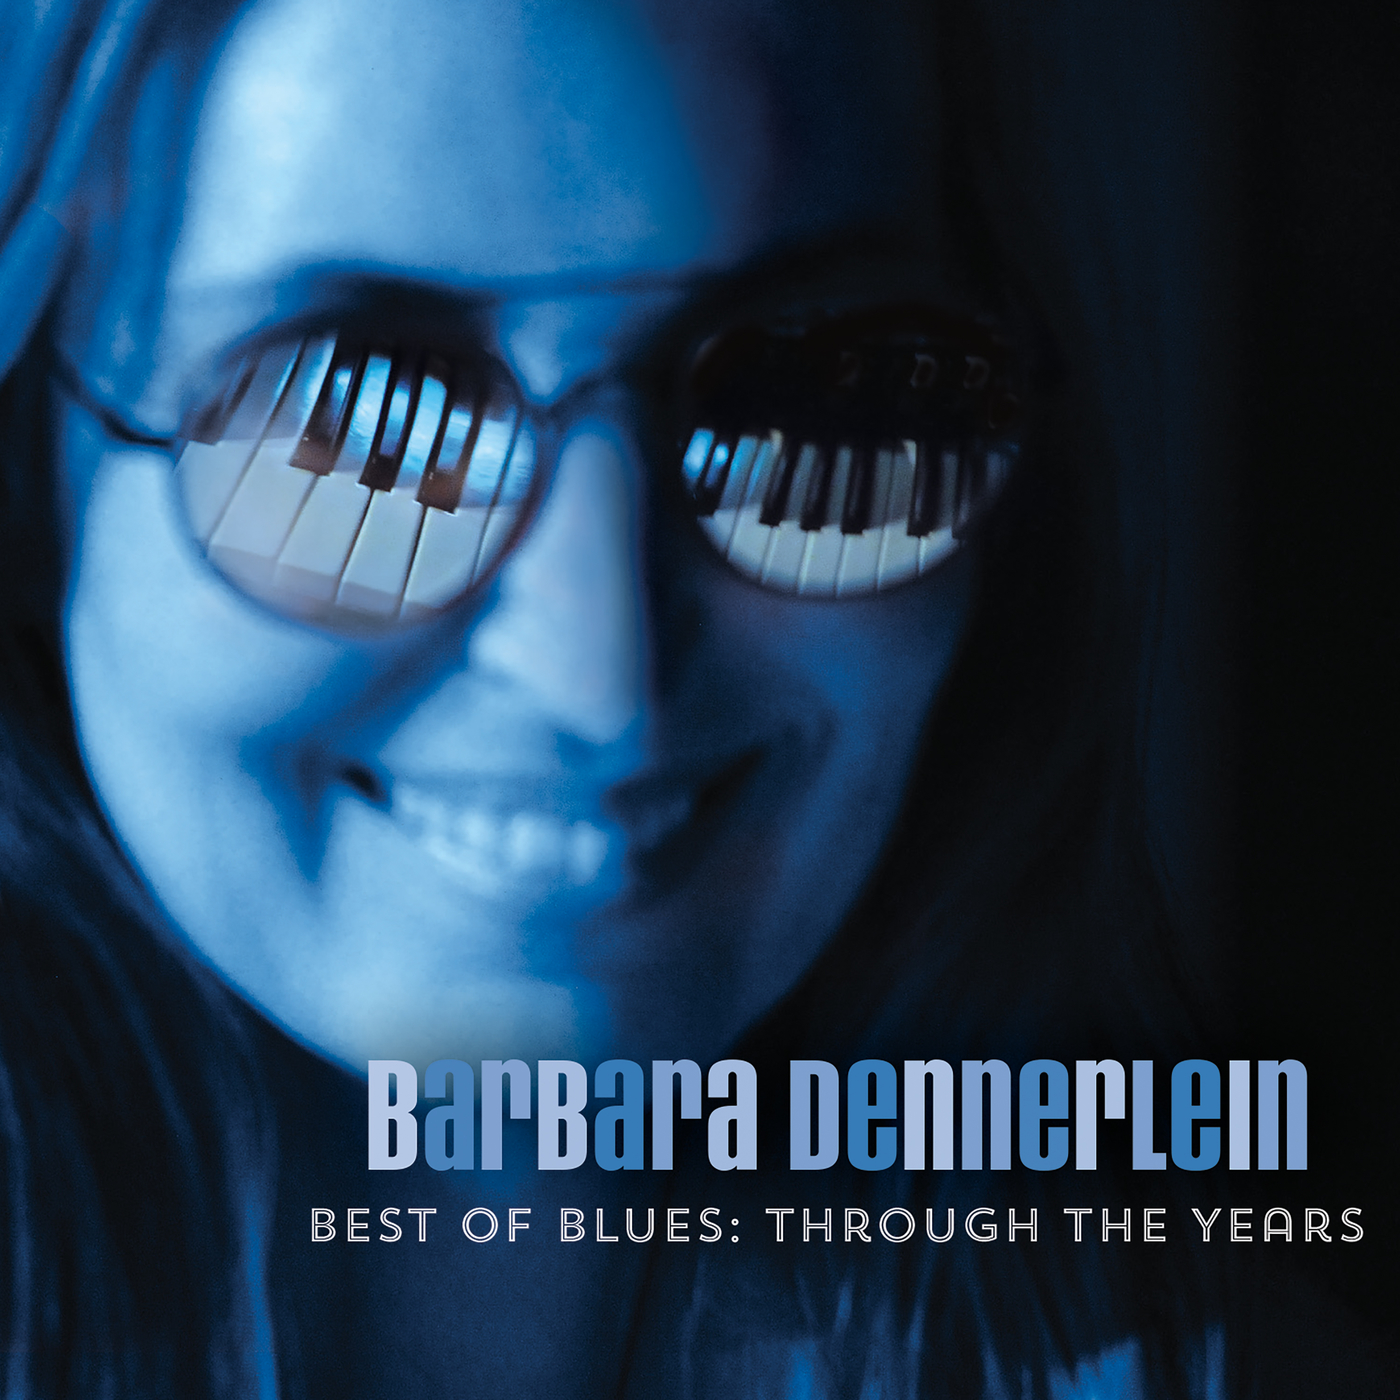 Best Of Blues - Through The Years - Barbara Dennerlein